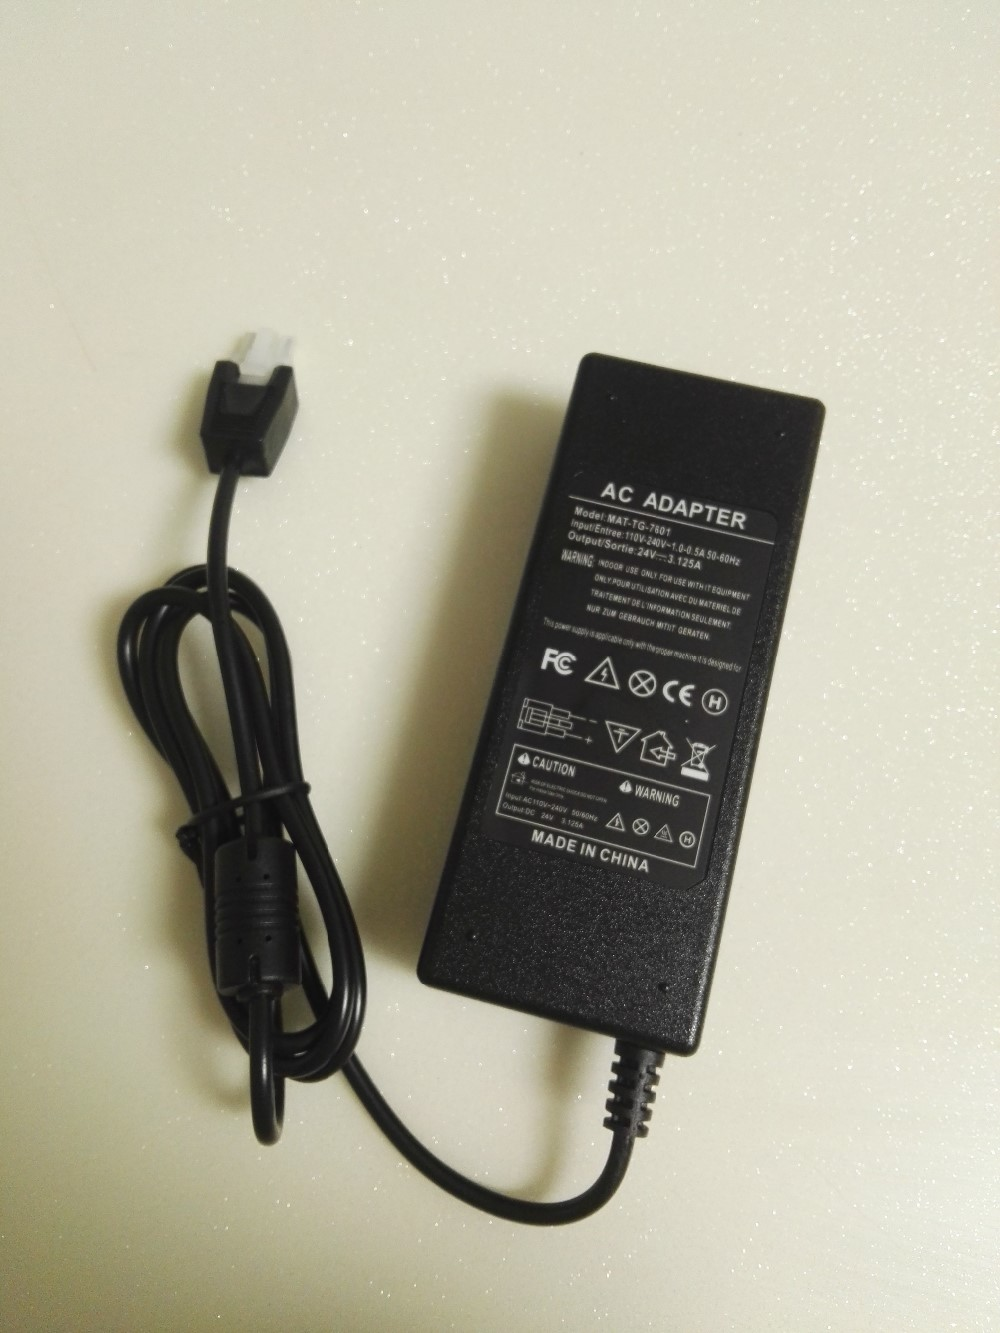 Power supply AC ADAPTER 24V 3.125A For Tiger Power TG-7501 IBM 42H1176